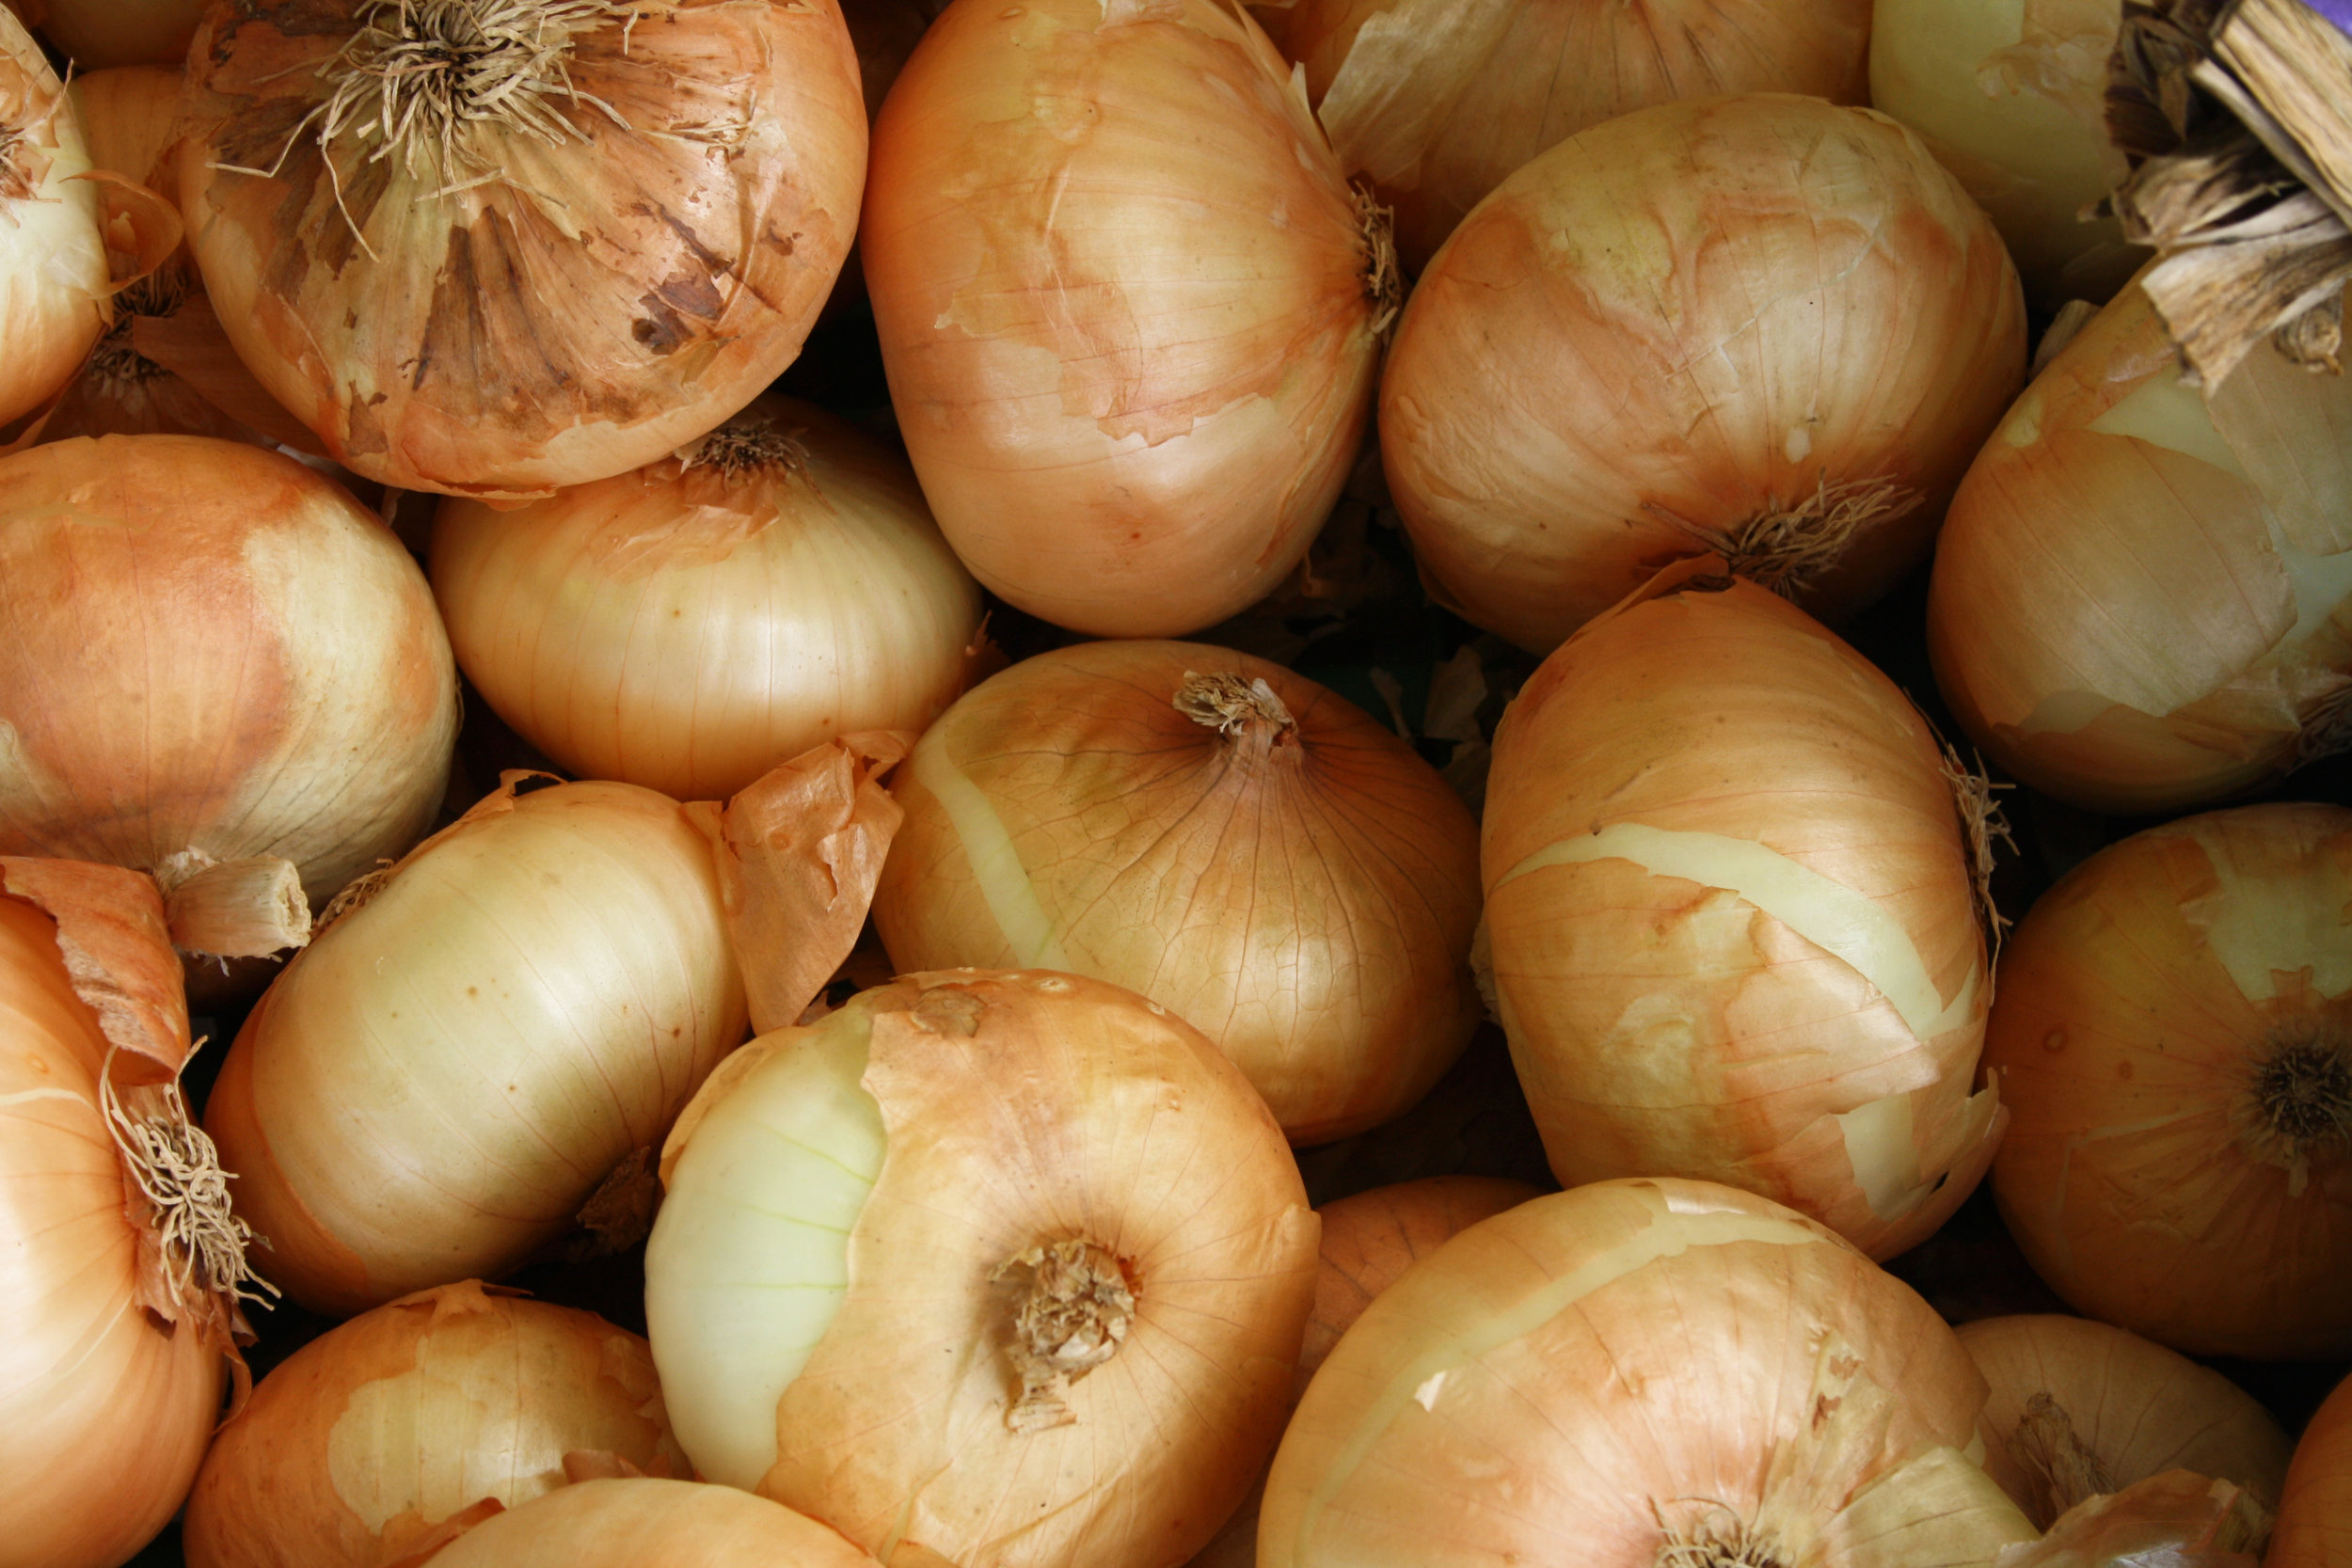 onions - Less than 10 percent of conventional onion samples contained any pesticide residues.No conventional onion samples contained more than three pesticides.